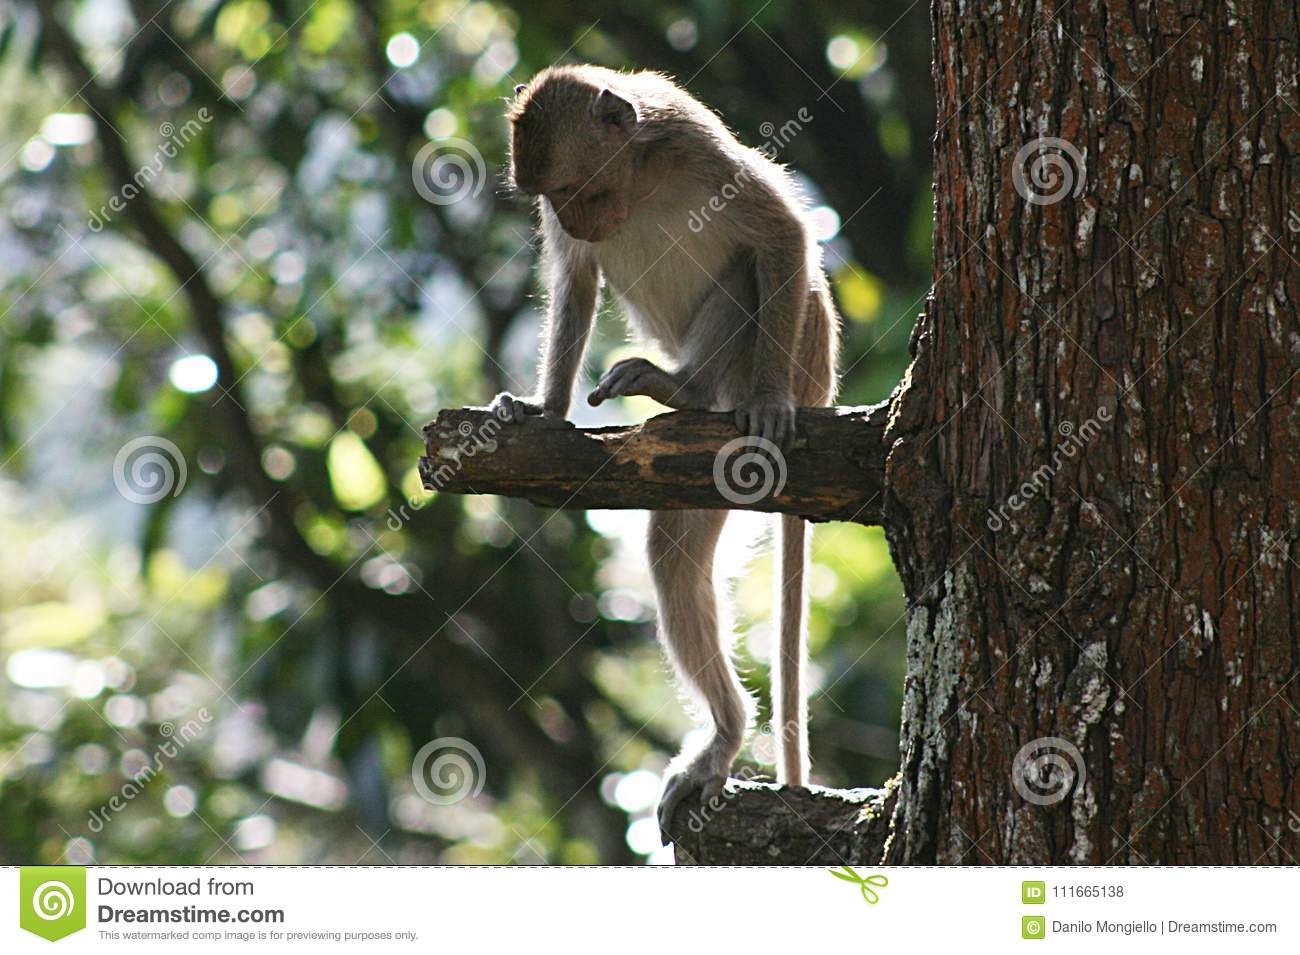 Java monkey in the wild and at home 68